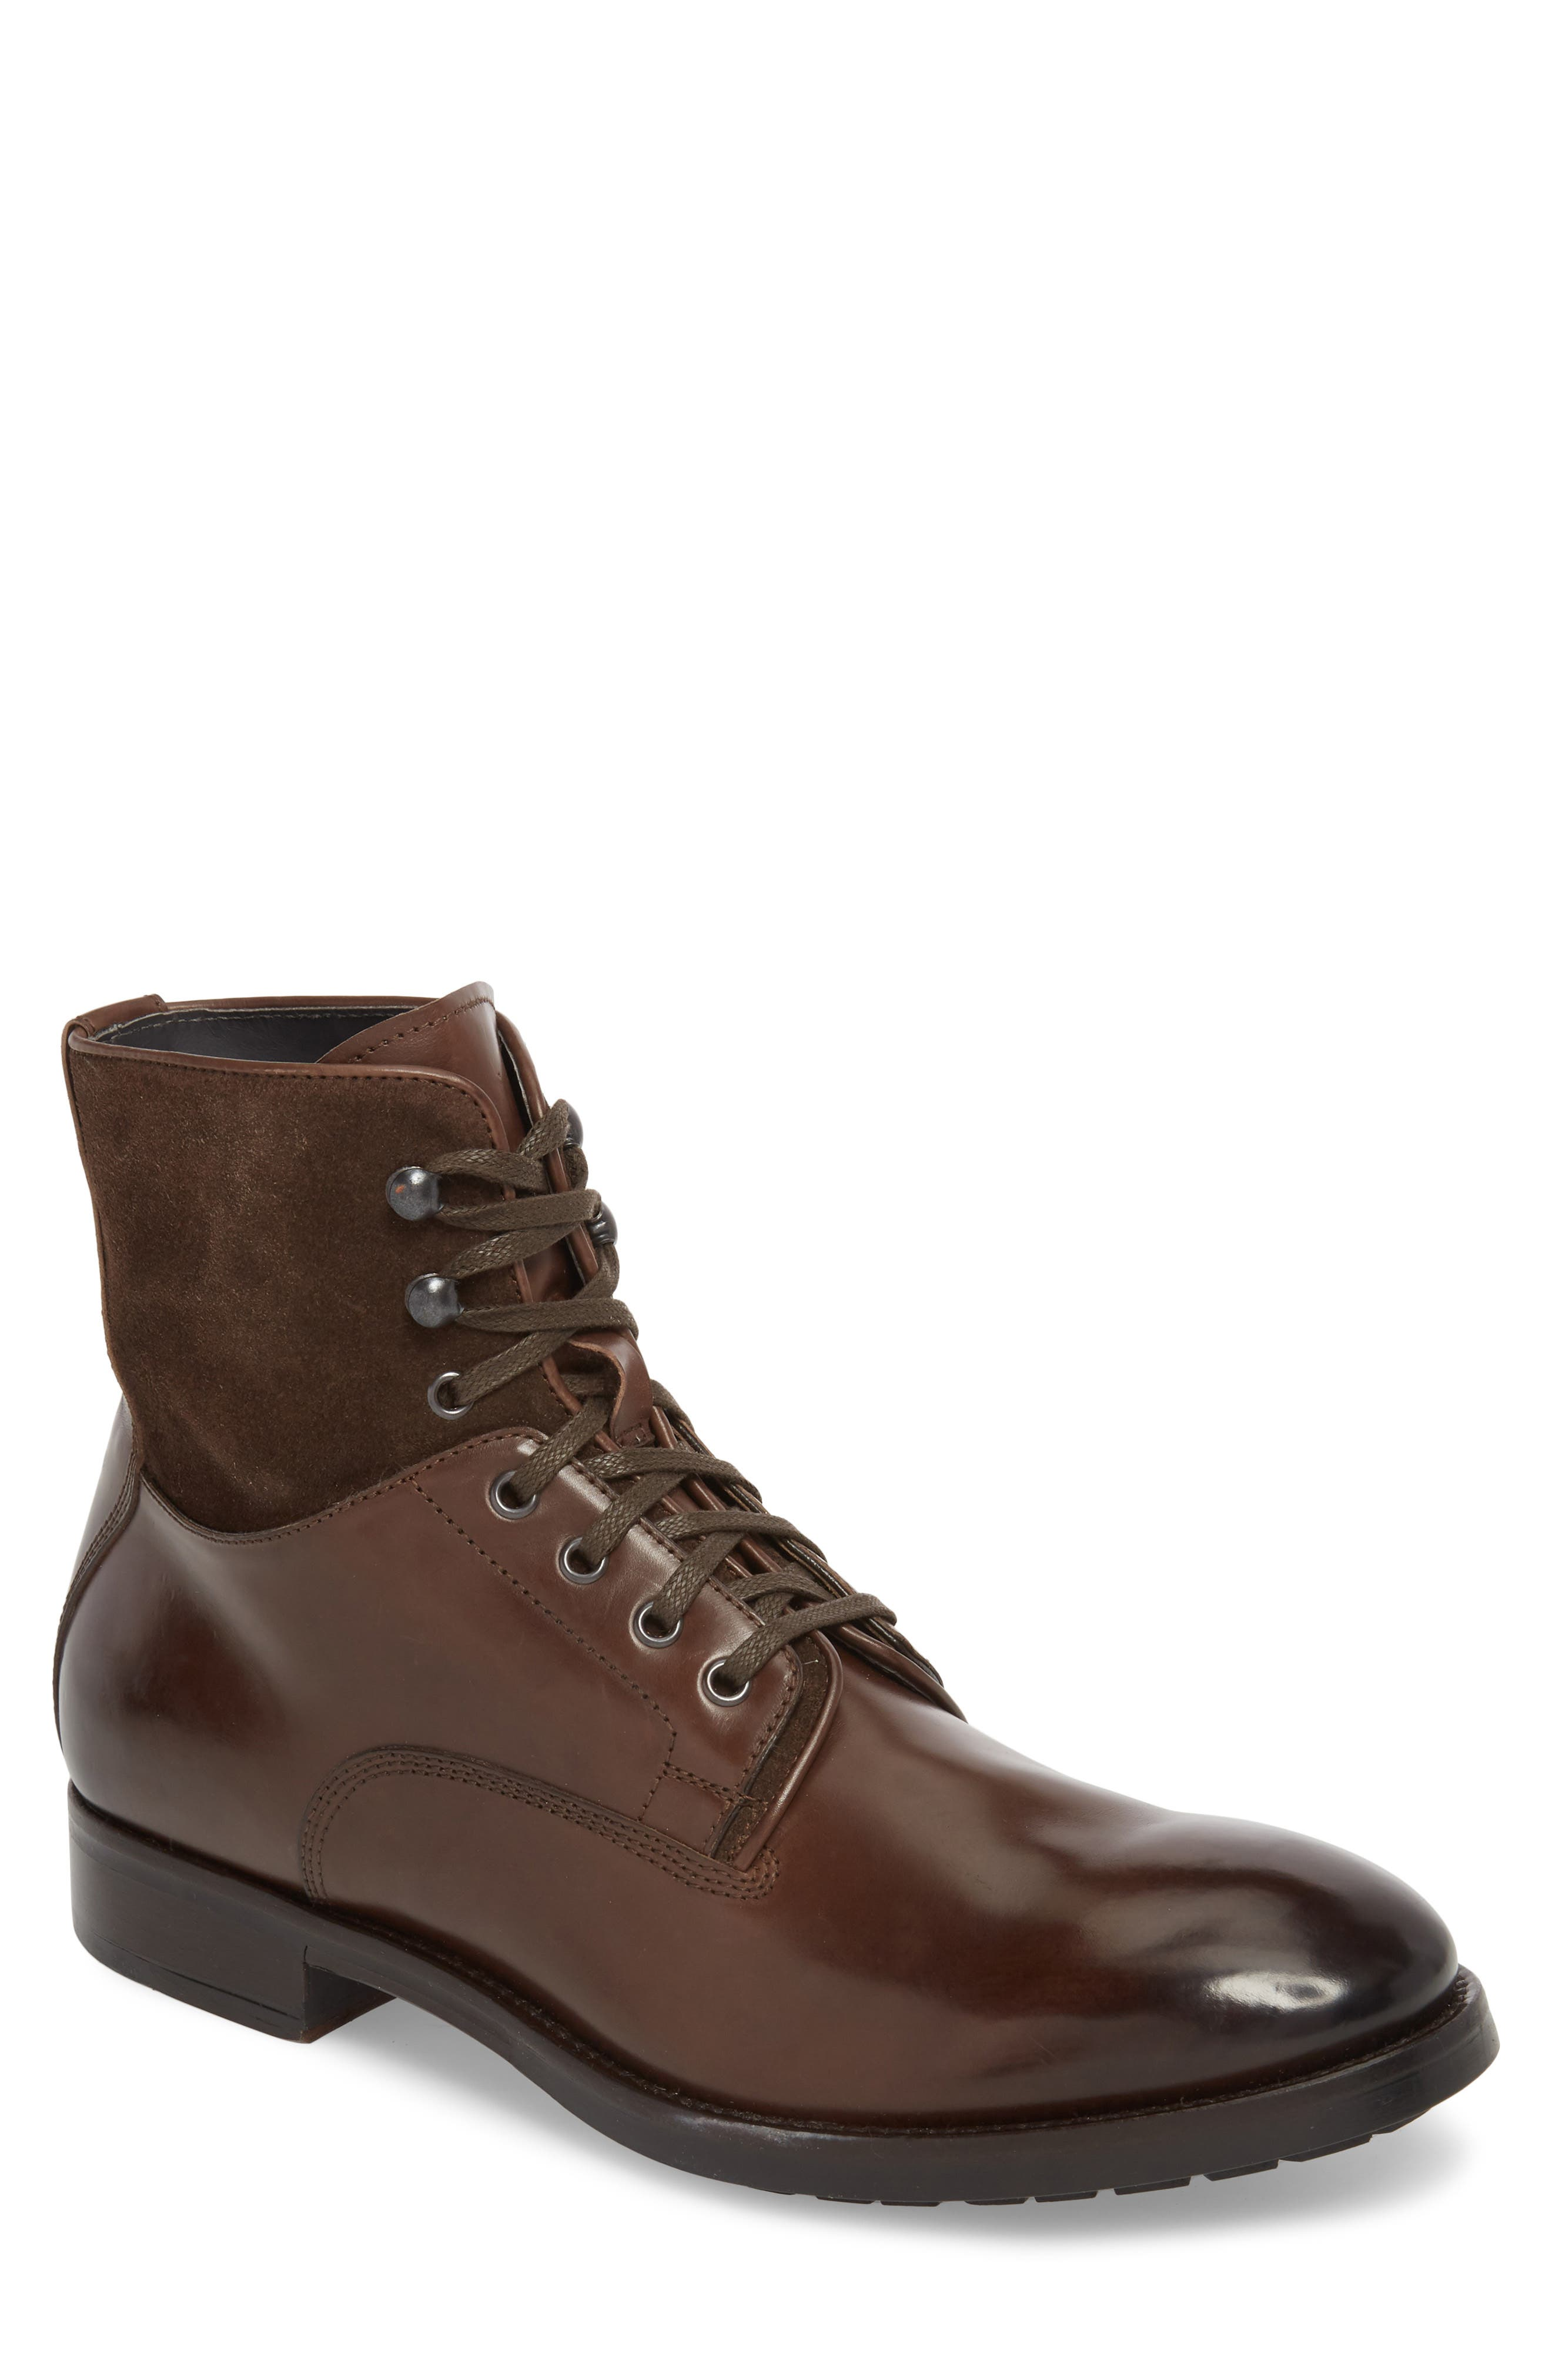 To Boot New York Abbott Tall Plain Toe Boot, Brown